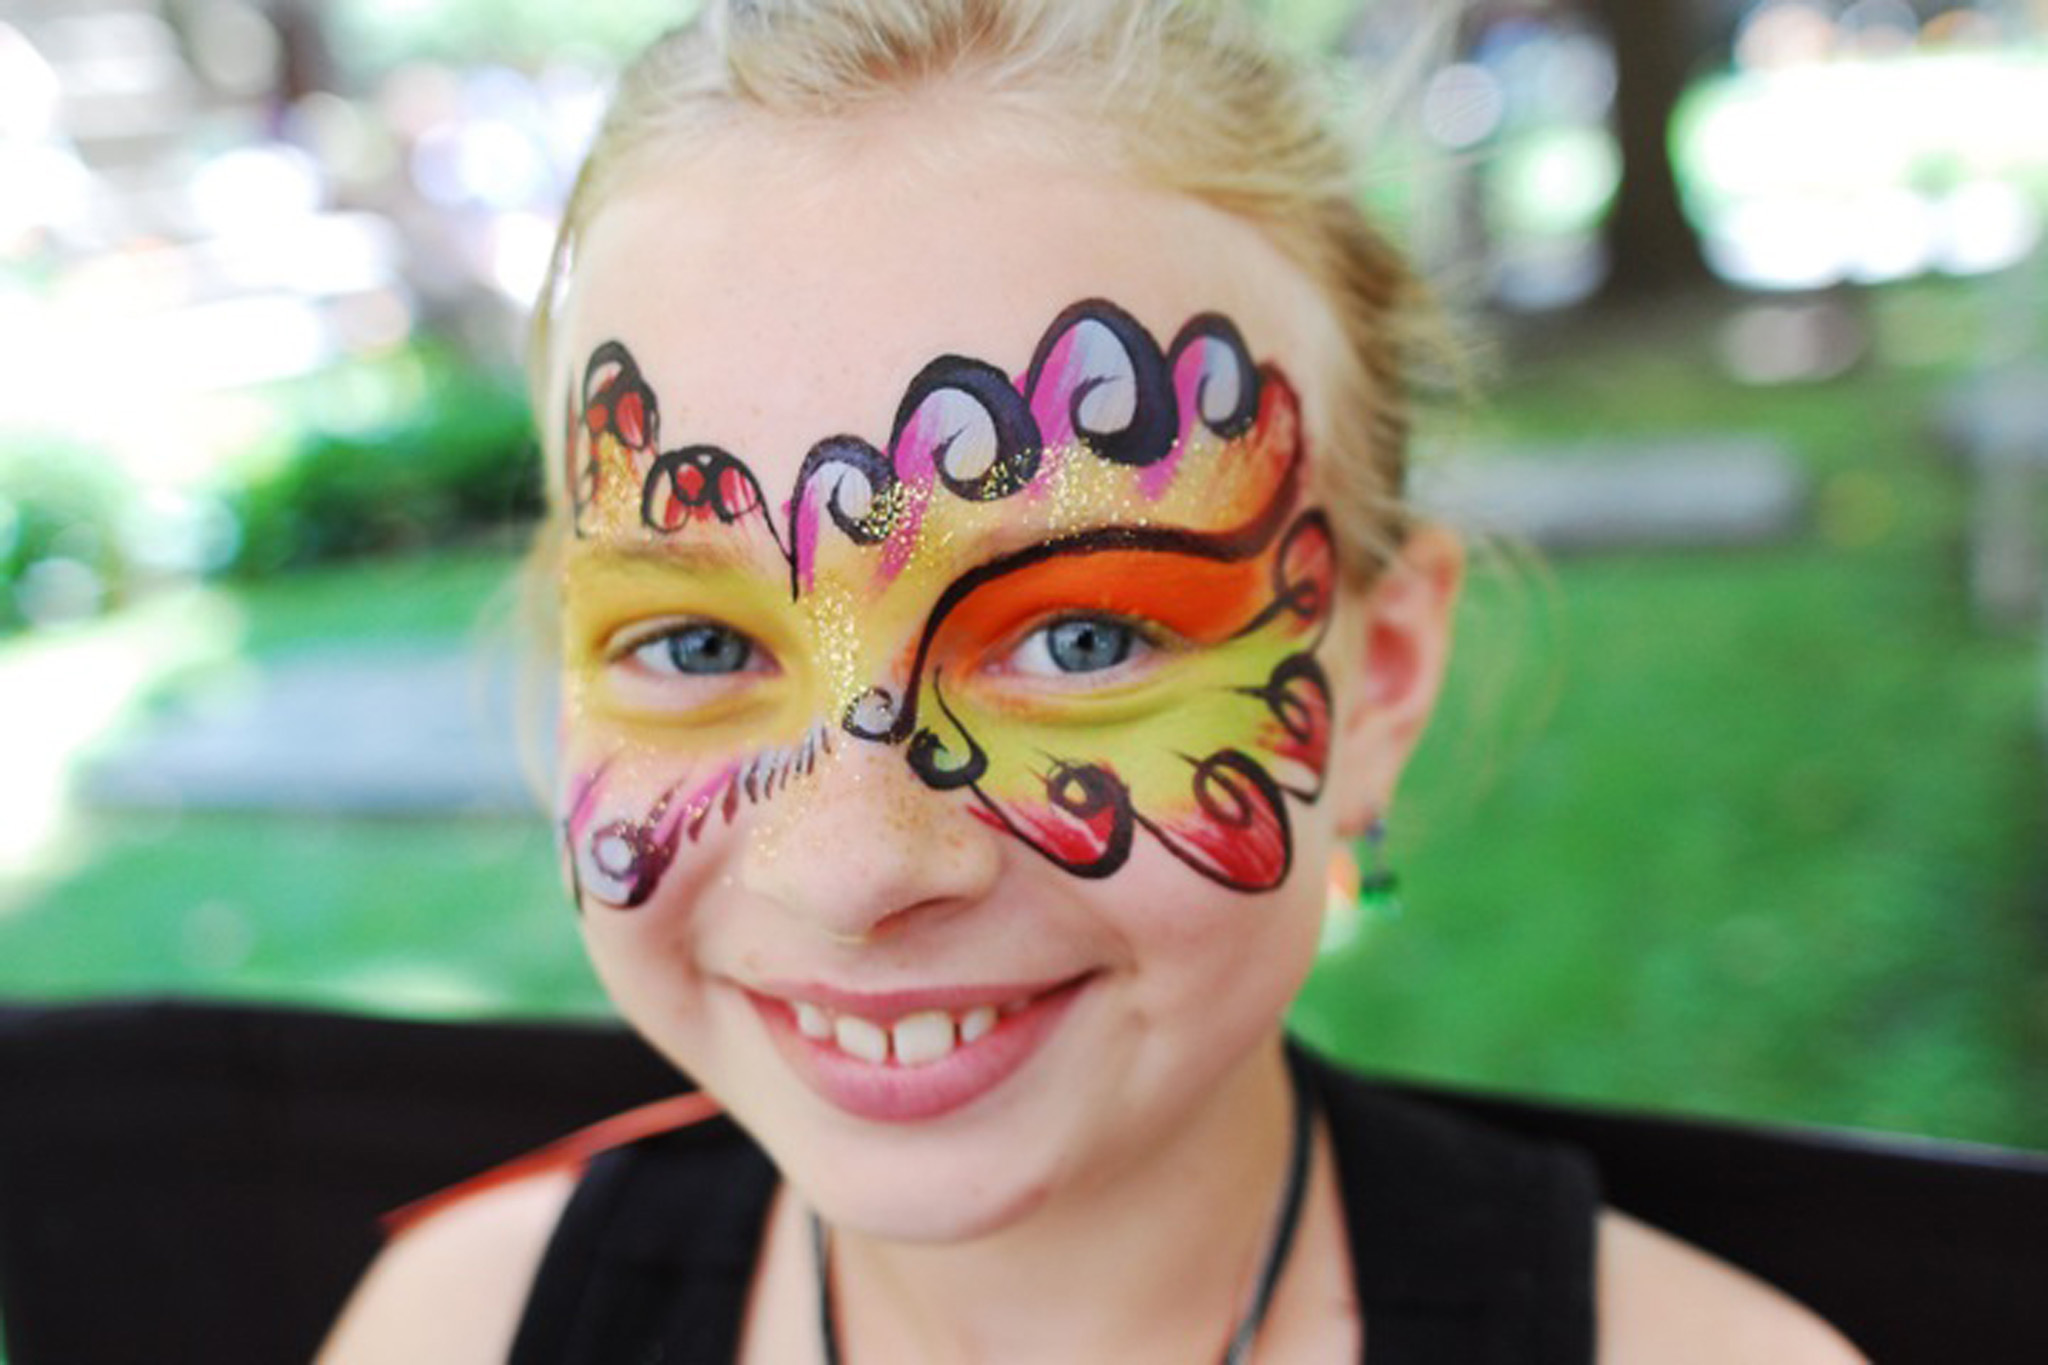 Face painters in New York City